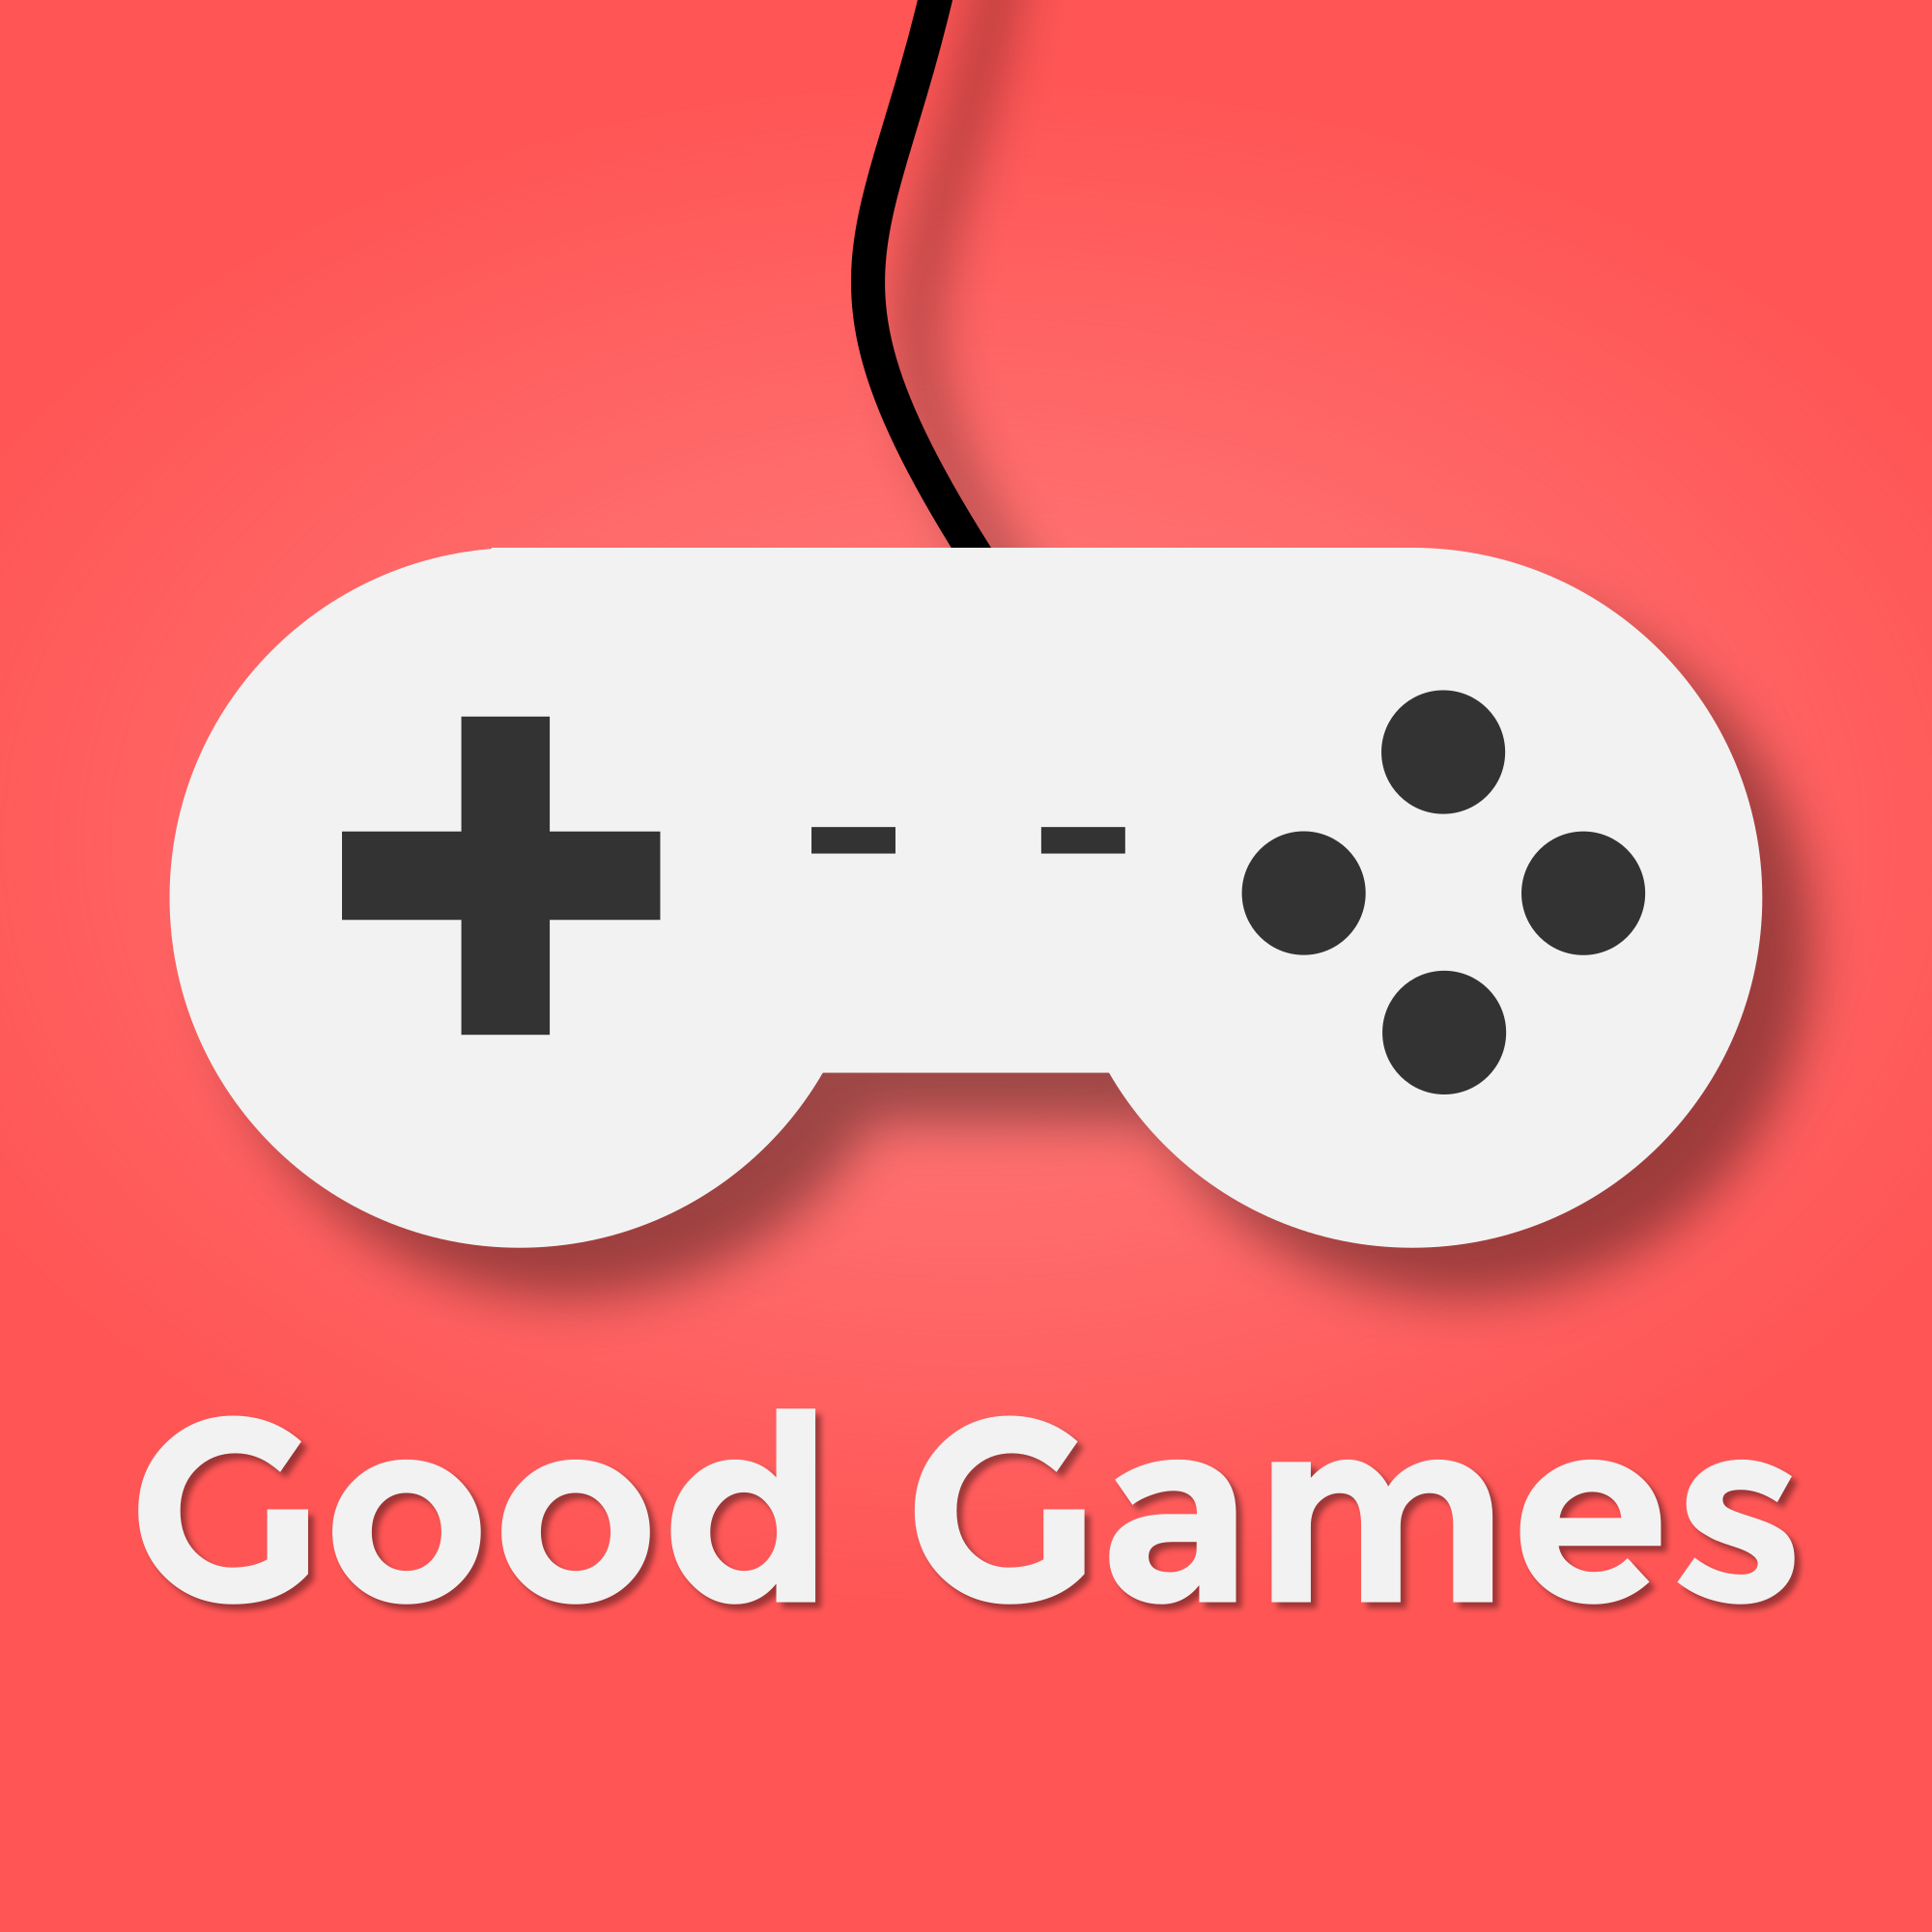 Good Games Podcast by Frank Frimpong-Manso, Alex Núñez on Apple Podcasts